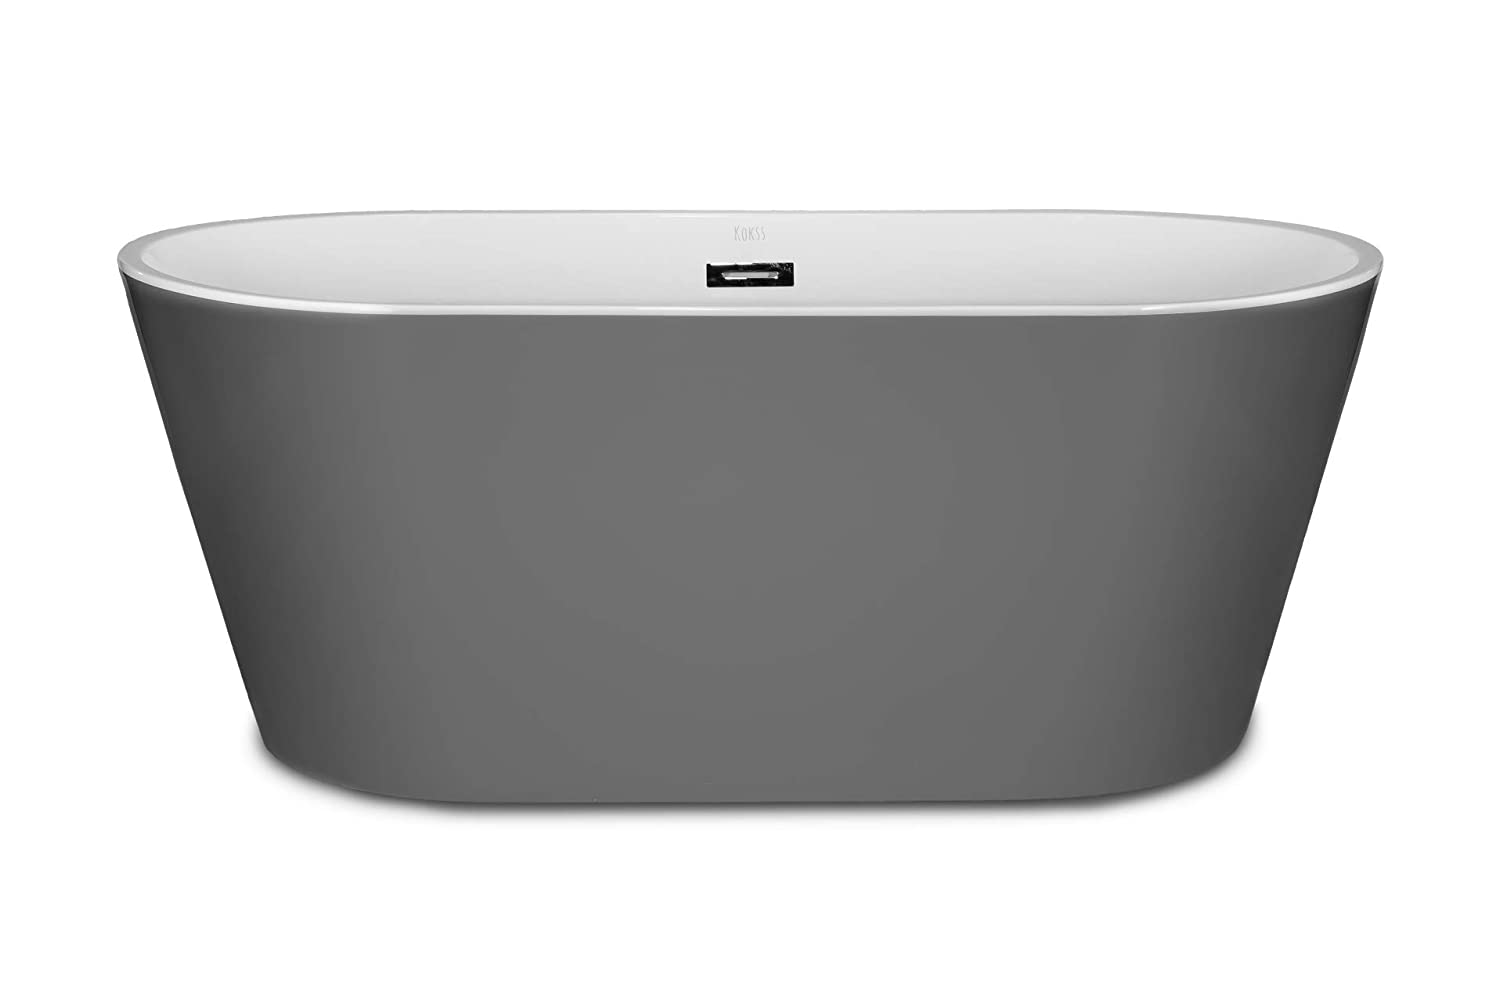 1001now Lugano 60 Grey Freestanding Acrylic Bathtub Amazon Com